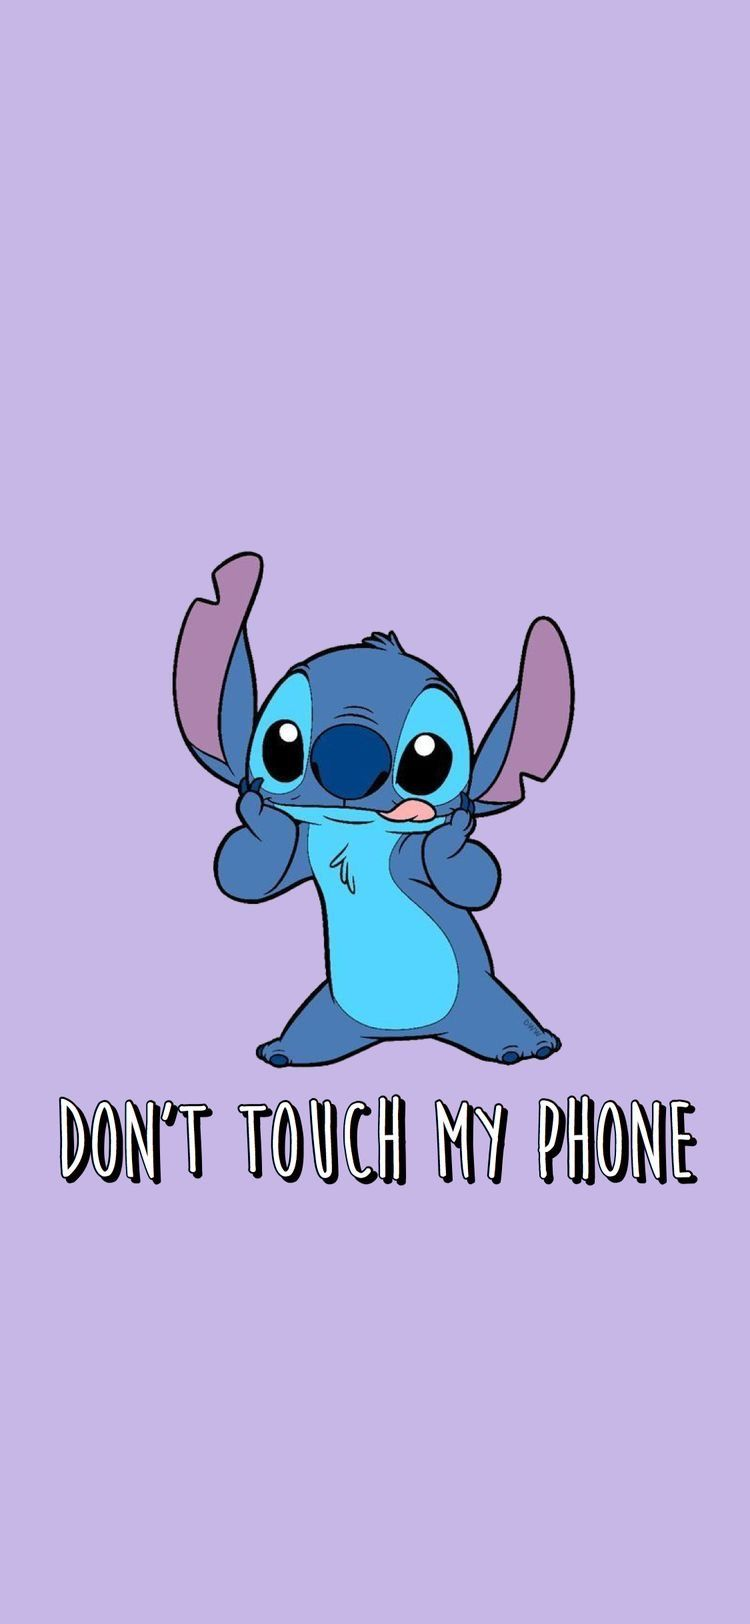 Cute Stitch Wallpaper In 2020 Dont Touch My Phone Wallpapers Funny Phone Wallpaper Disney Phone Wallpaper